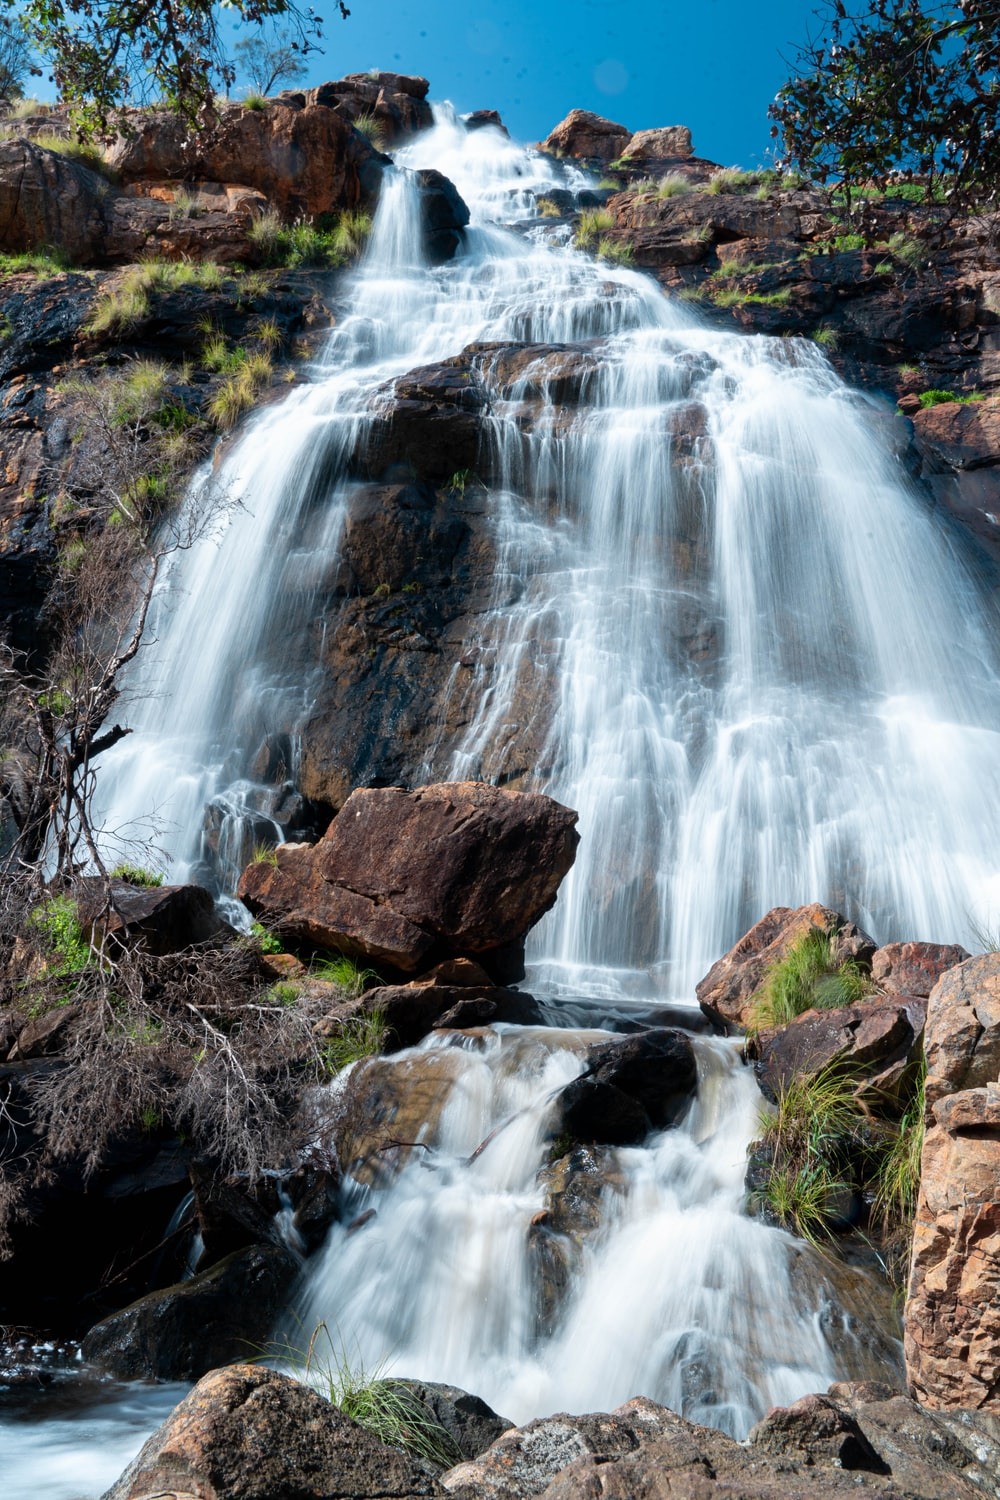 water falls on brown rocky mountain during daytime